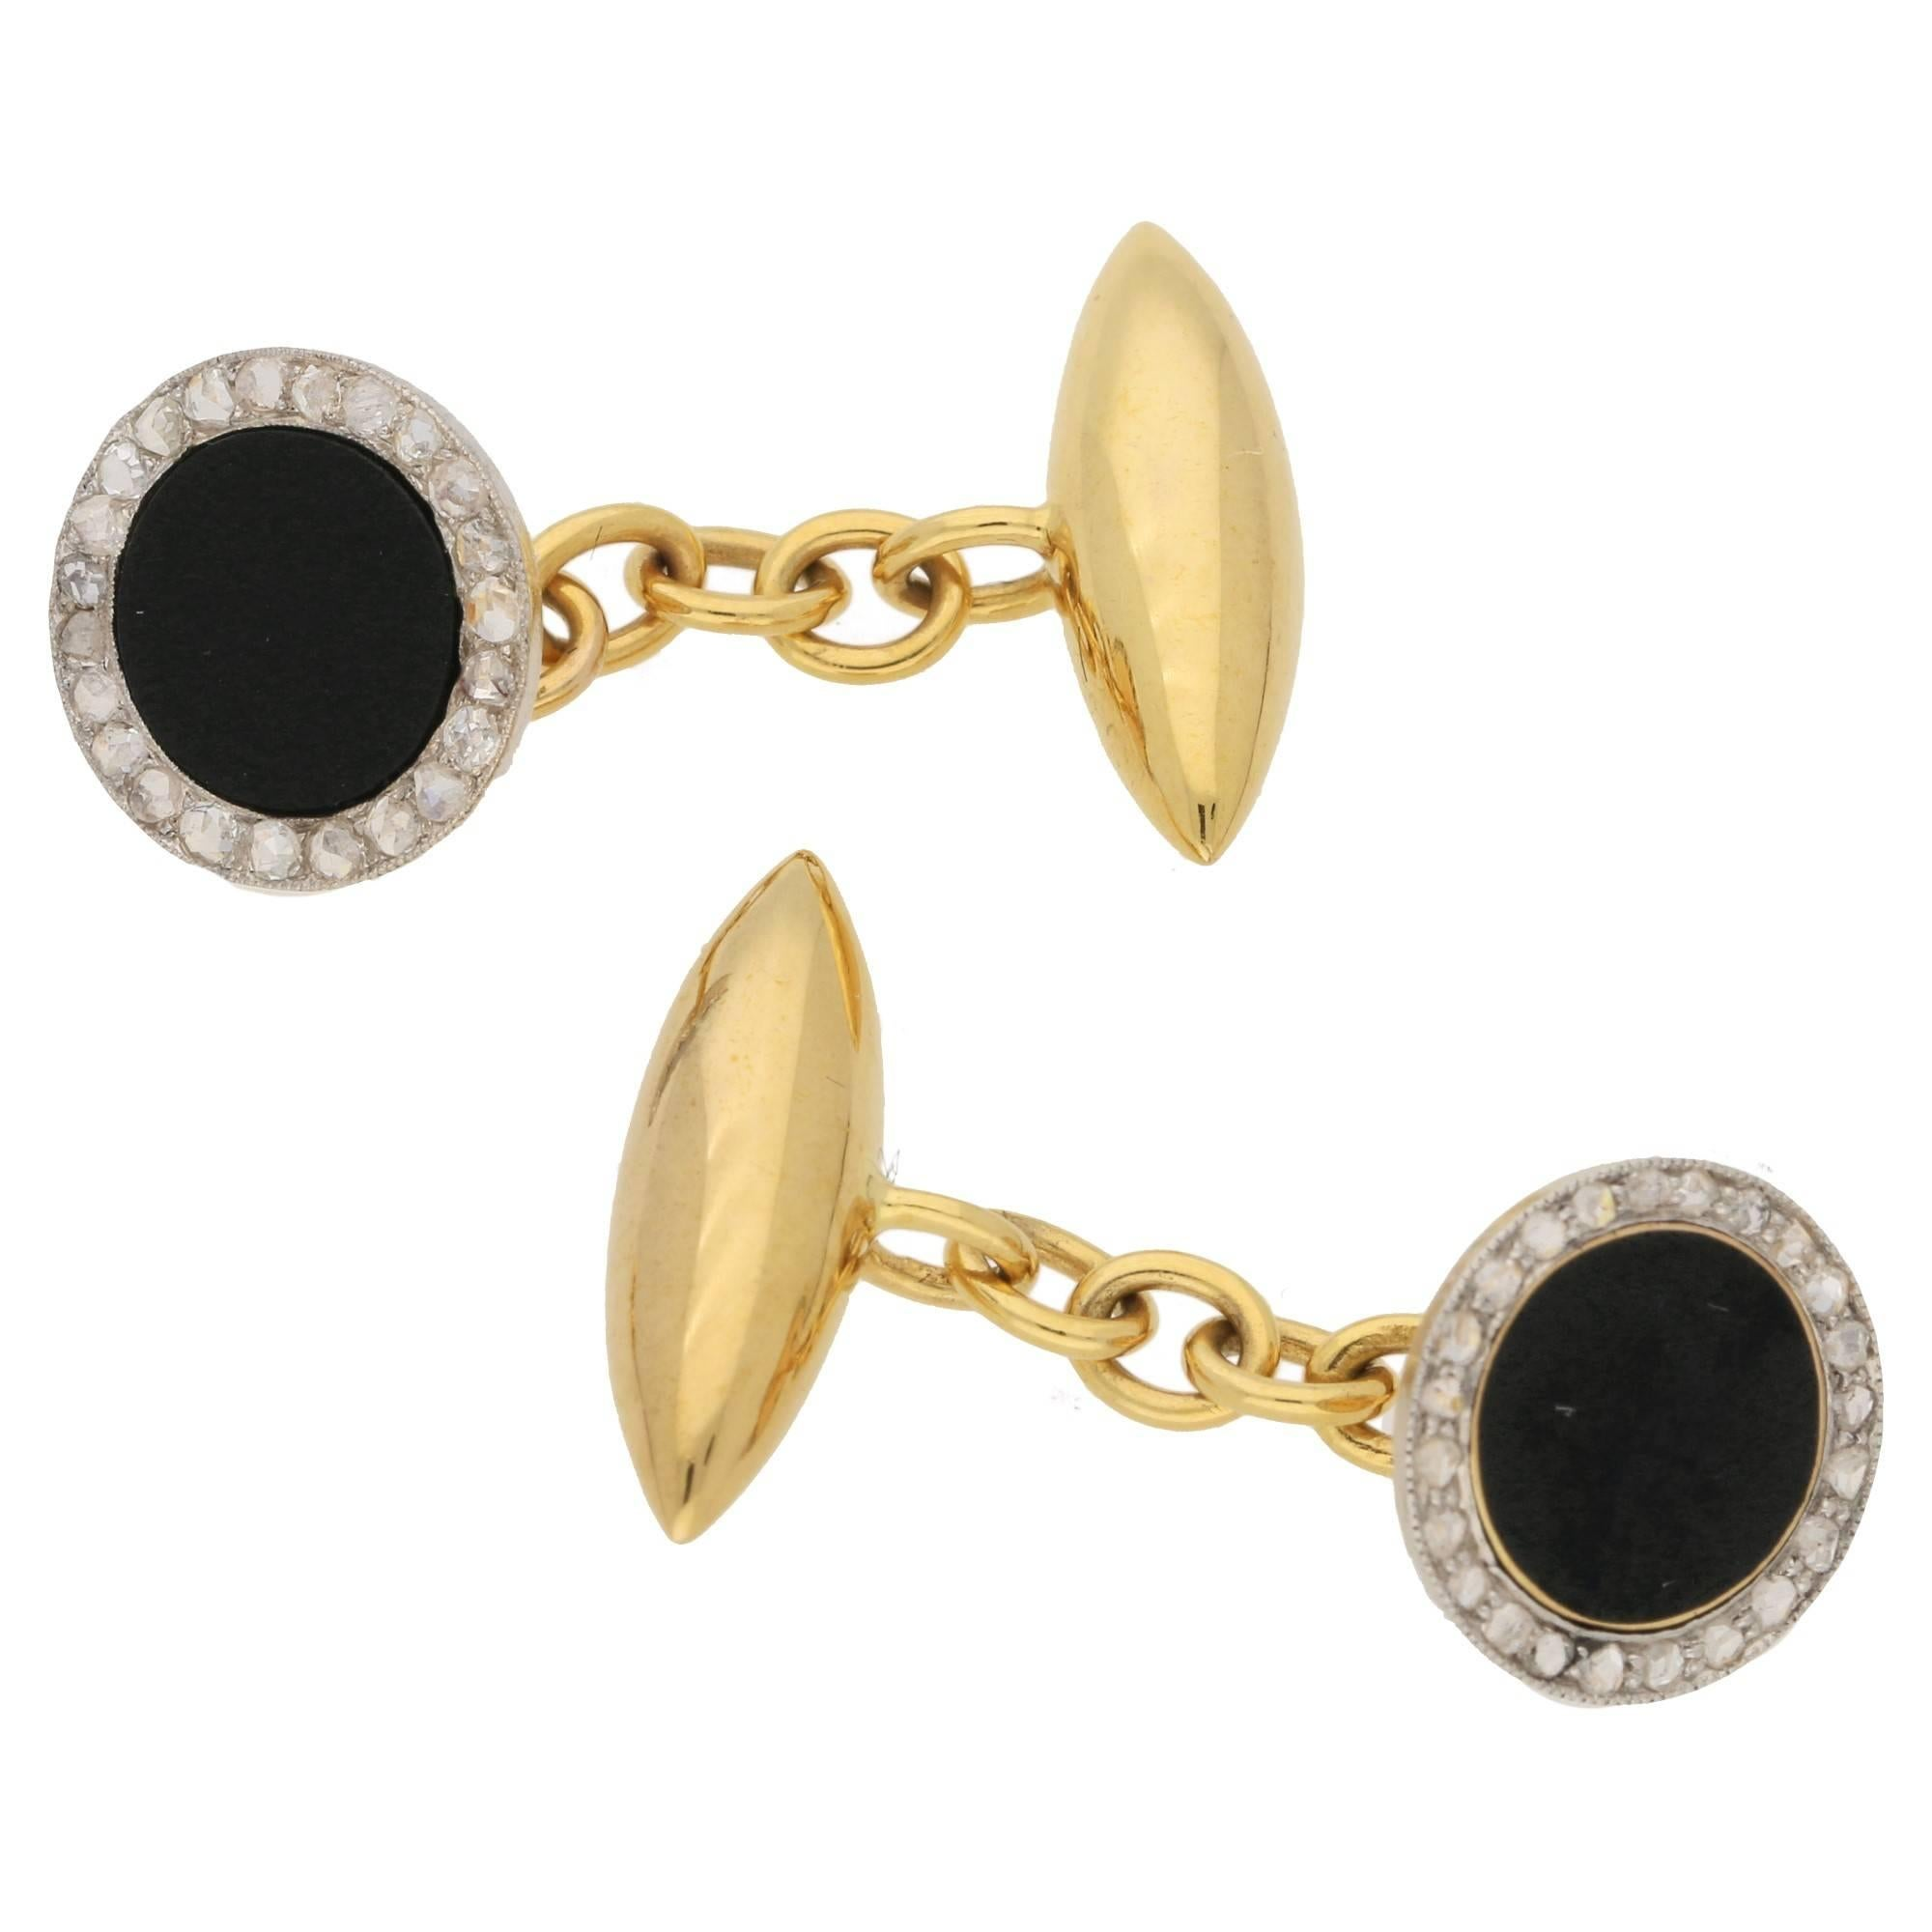 1stdibs 14k Yellow Gold With Onyx Chain-link Cuff Links ABvl7AxO